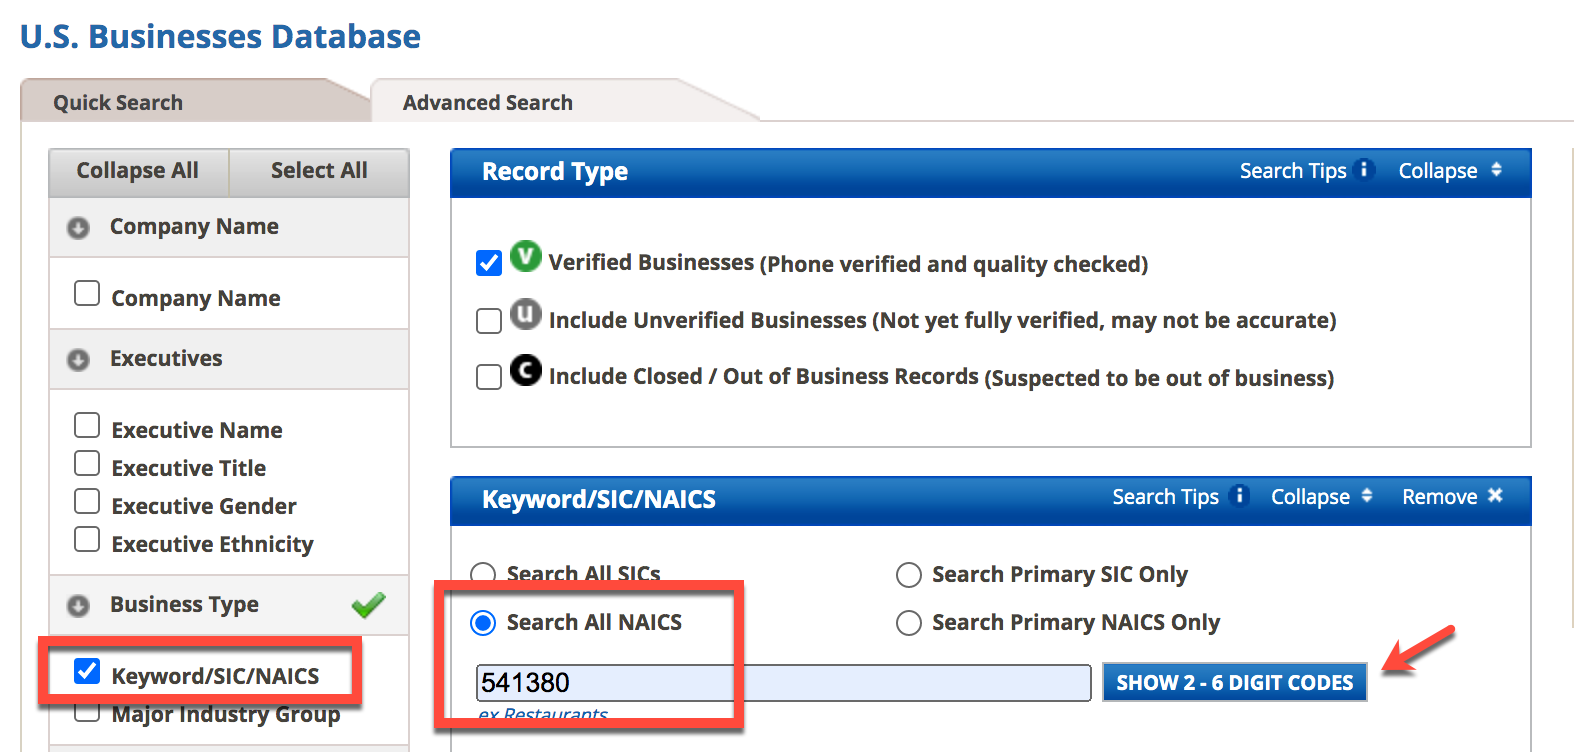 Image of U.S. Businesses Database search with Keyword/NAICS selection